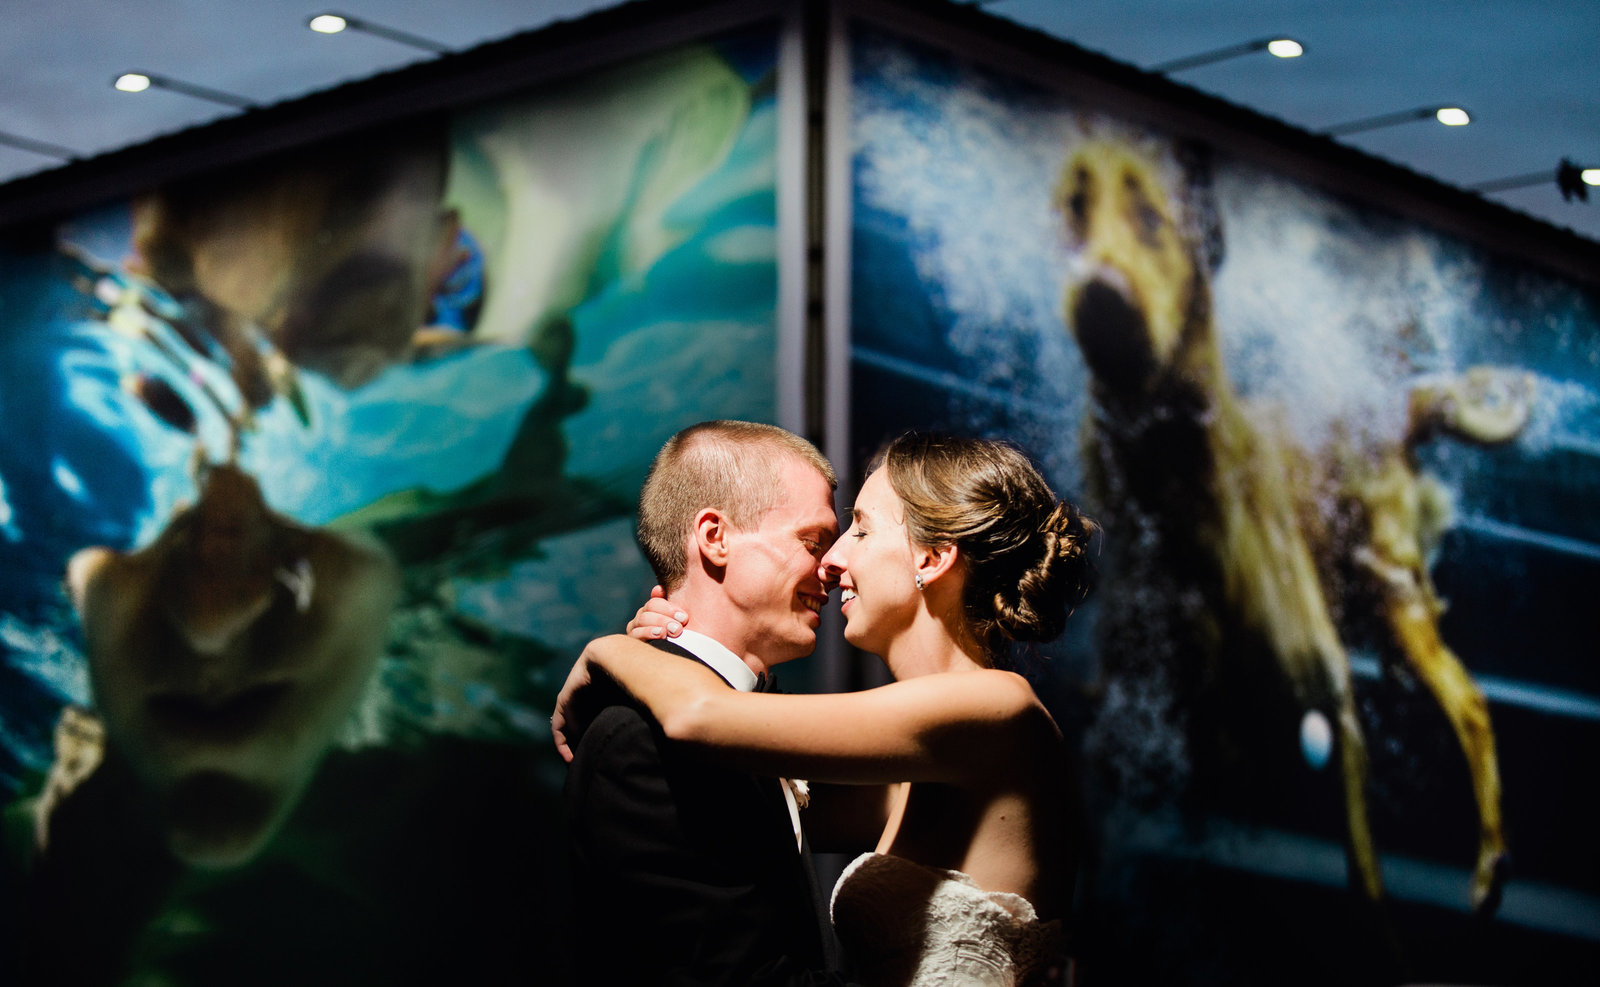 a downtown Columbus wedding photo taken at night of a couple in front of a colorful billboard with a dog and swimmer underwater